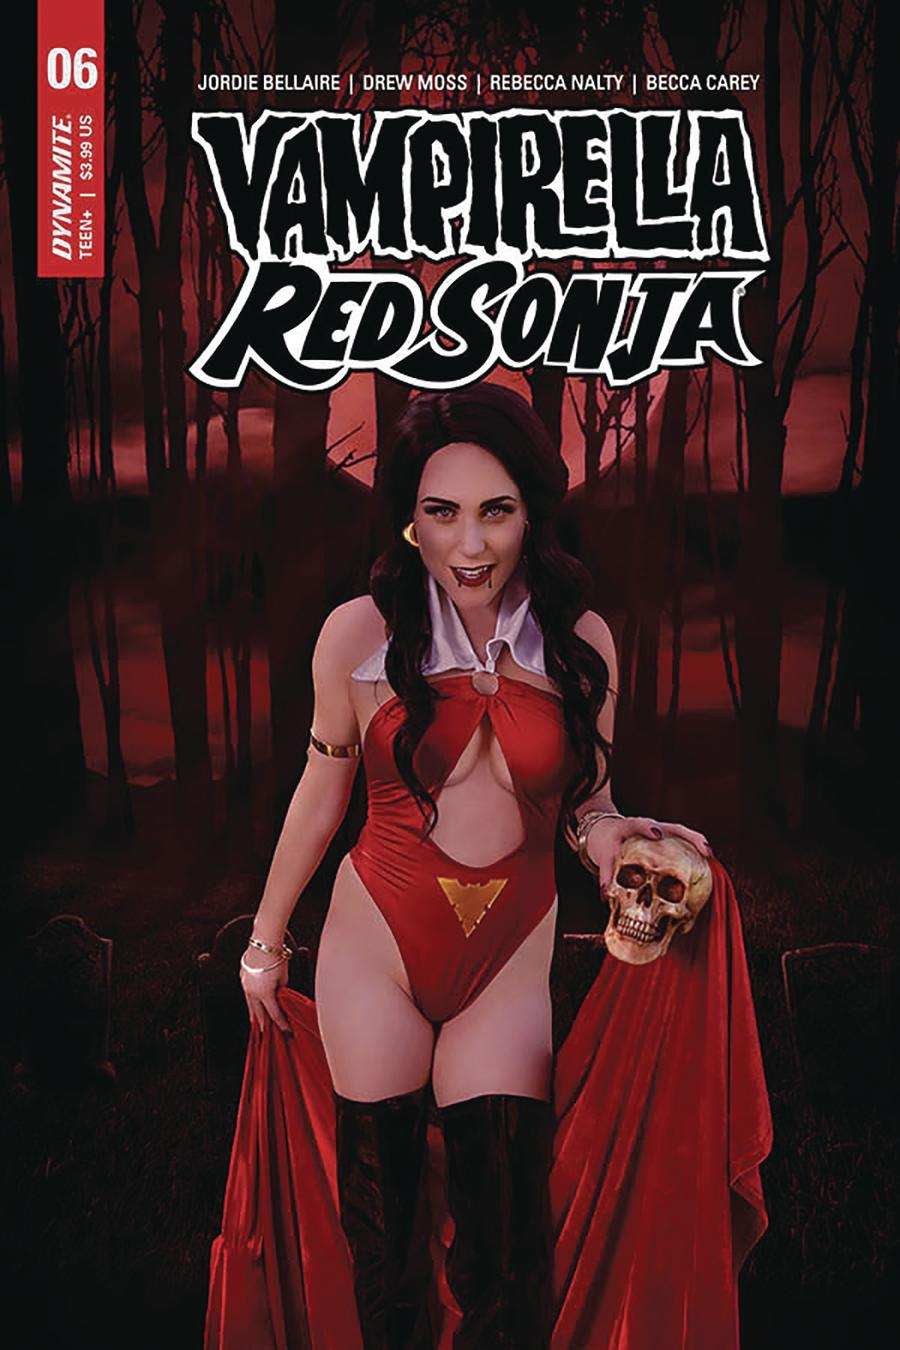 Vampirella Red Sonja #6 Cover E Variant Shannon Kingston Cosplay Photo Cover